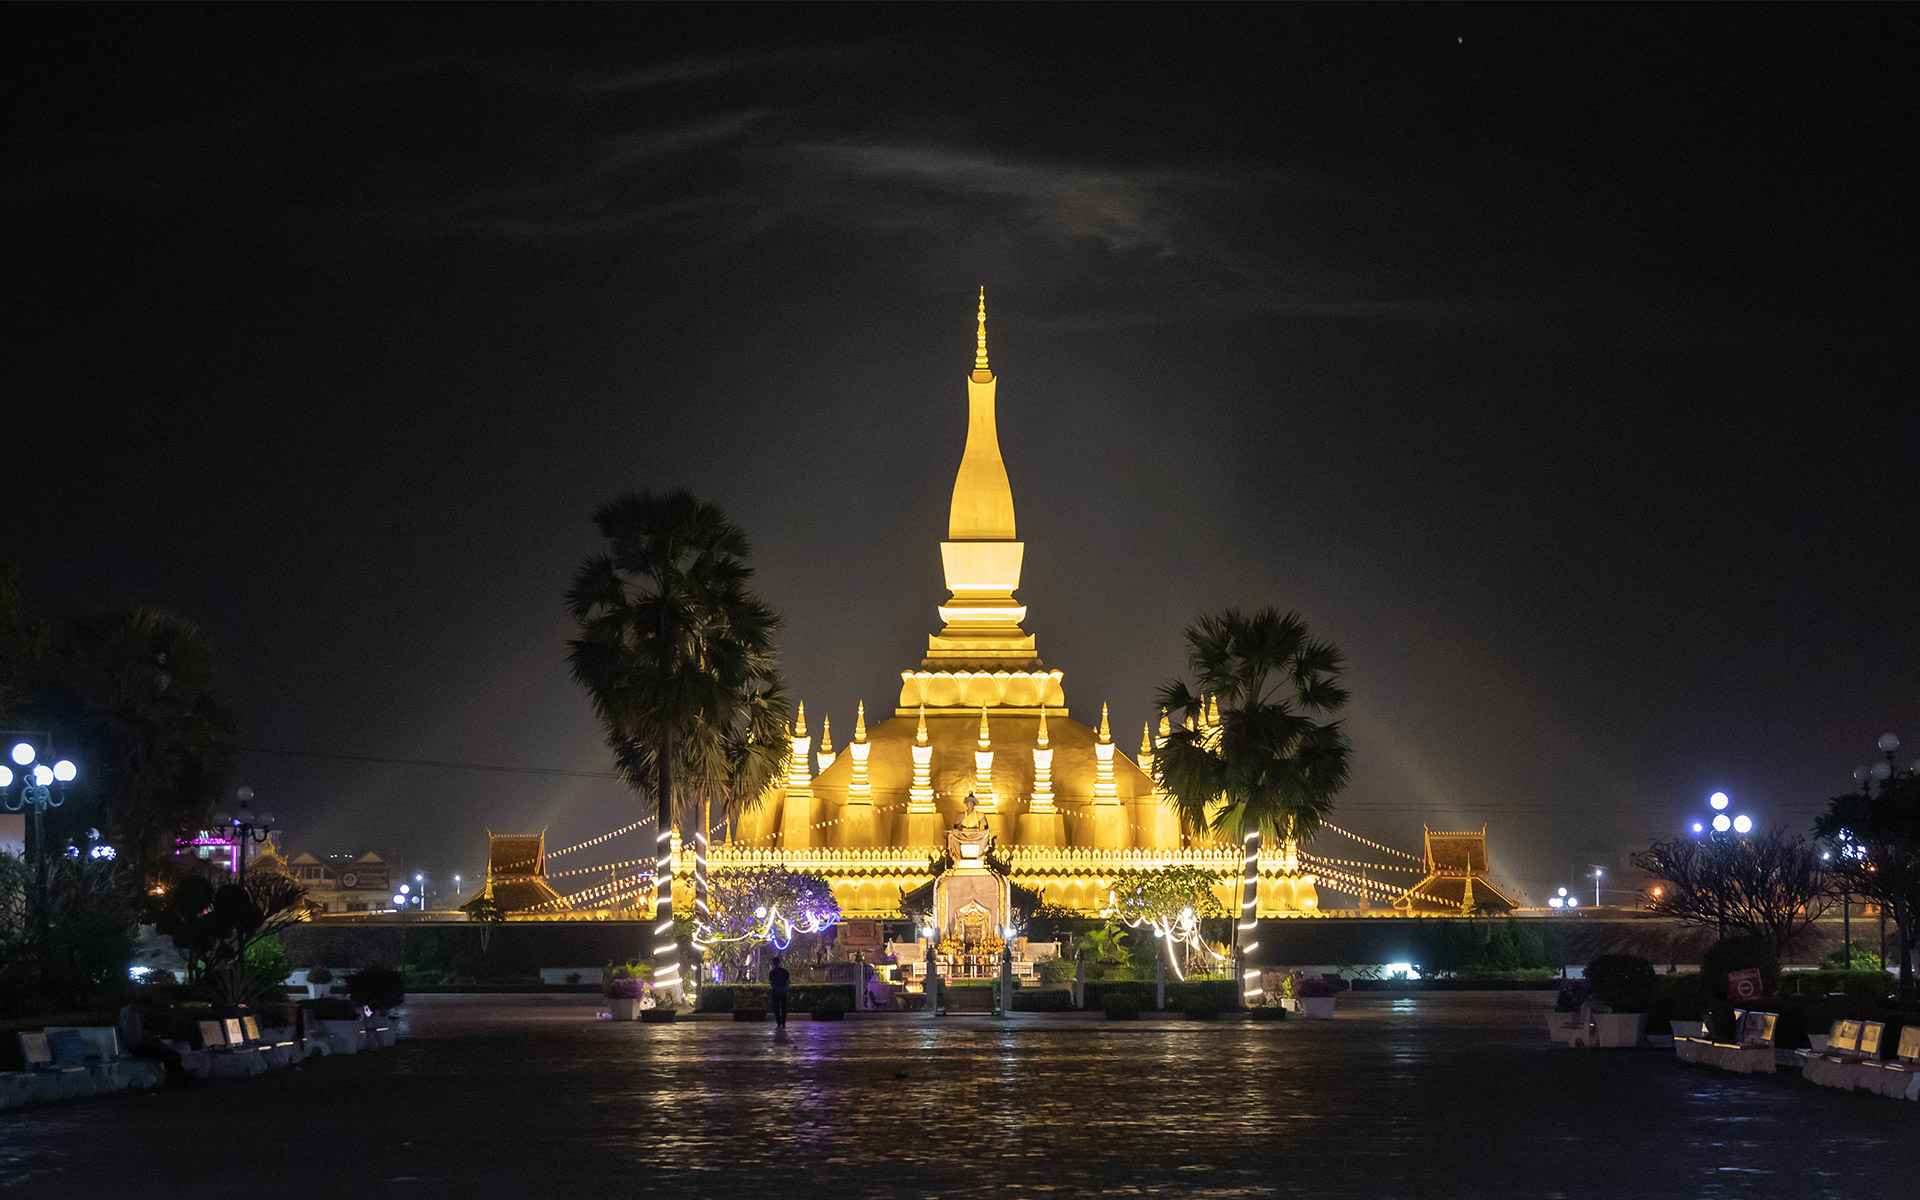 Phra That Luang in Vientiane